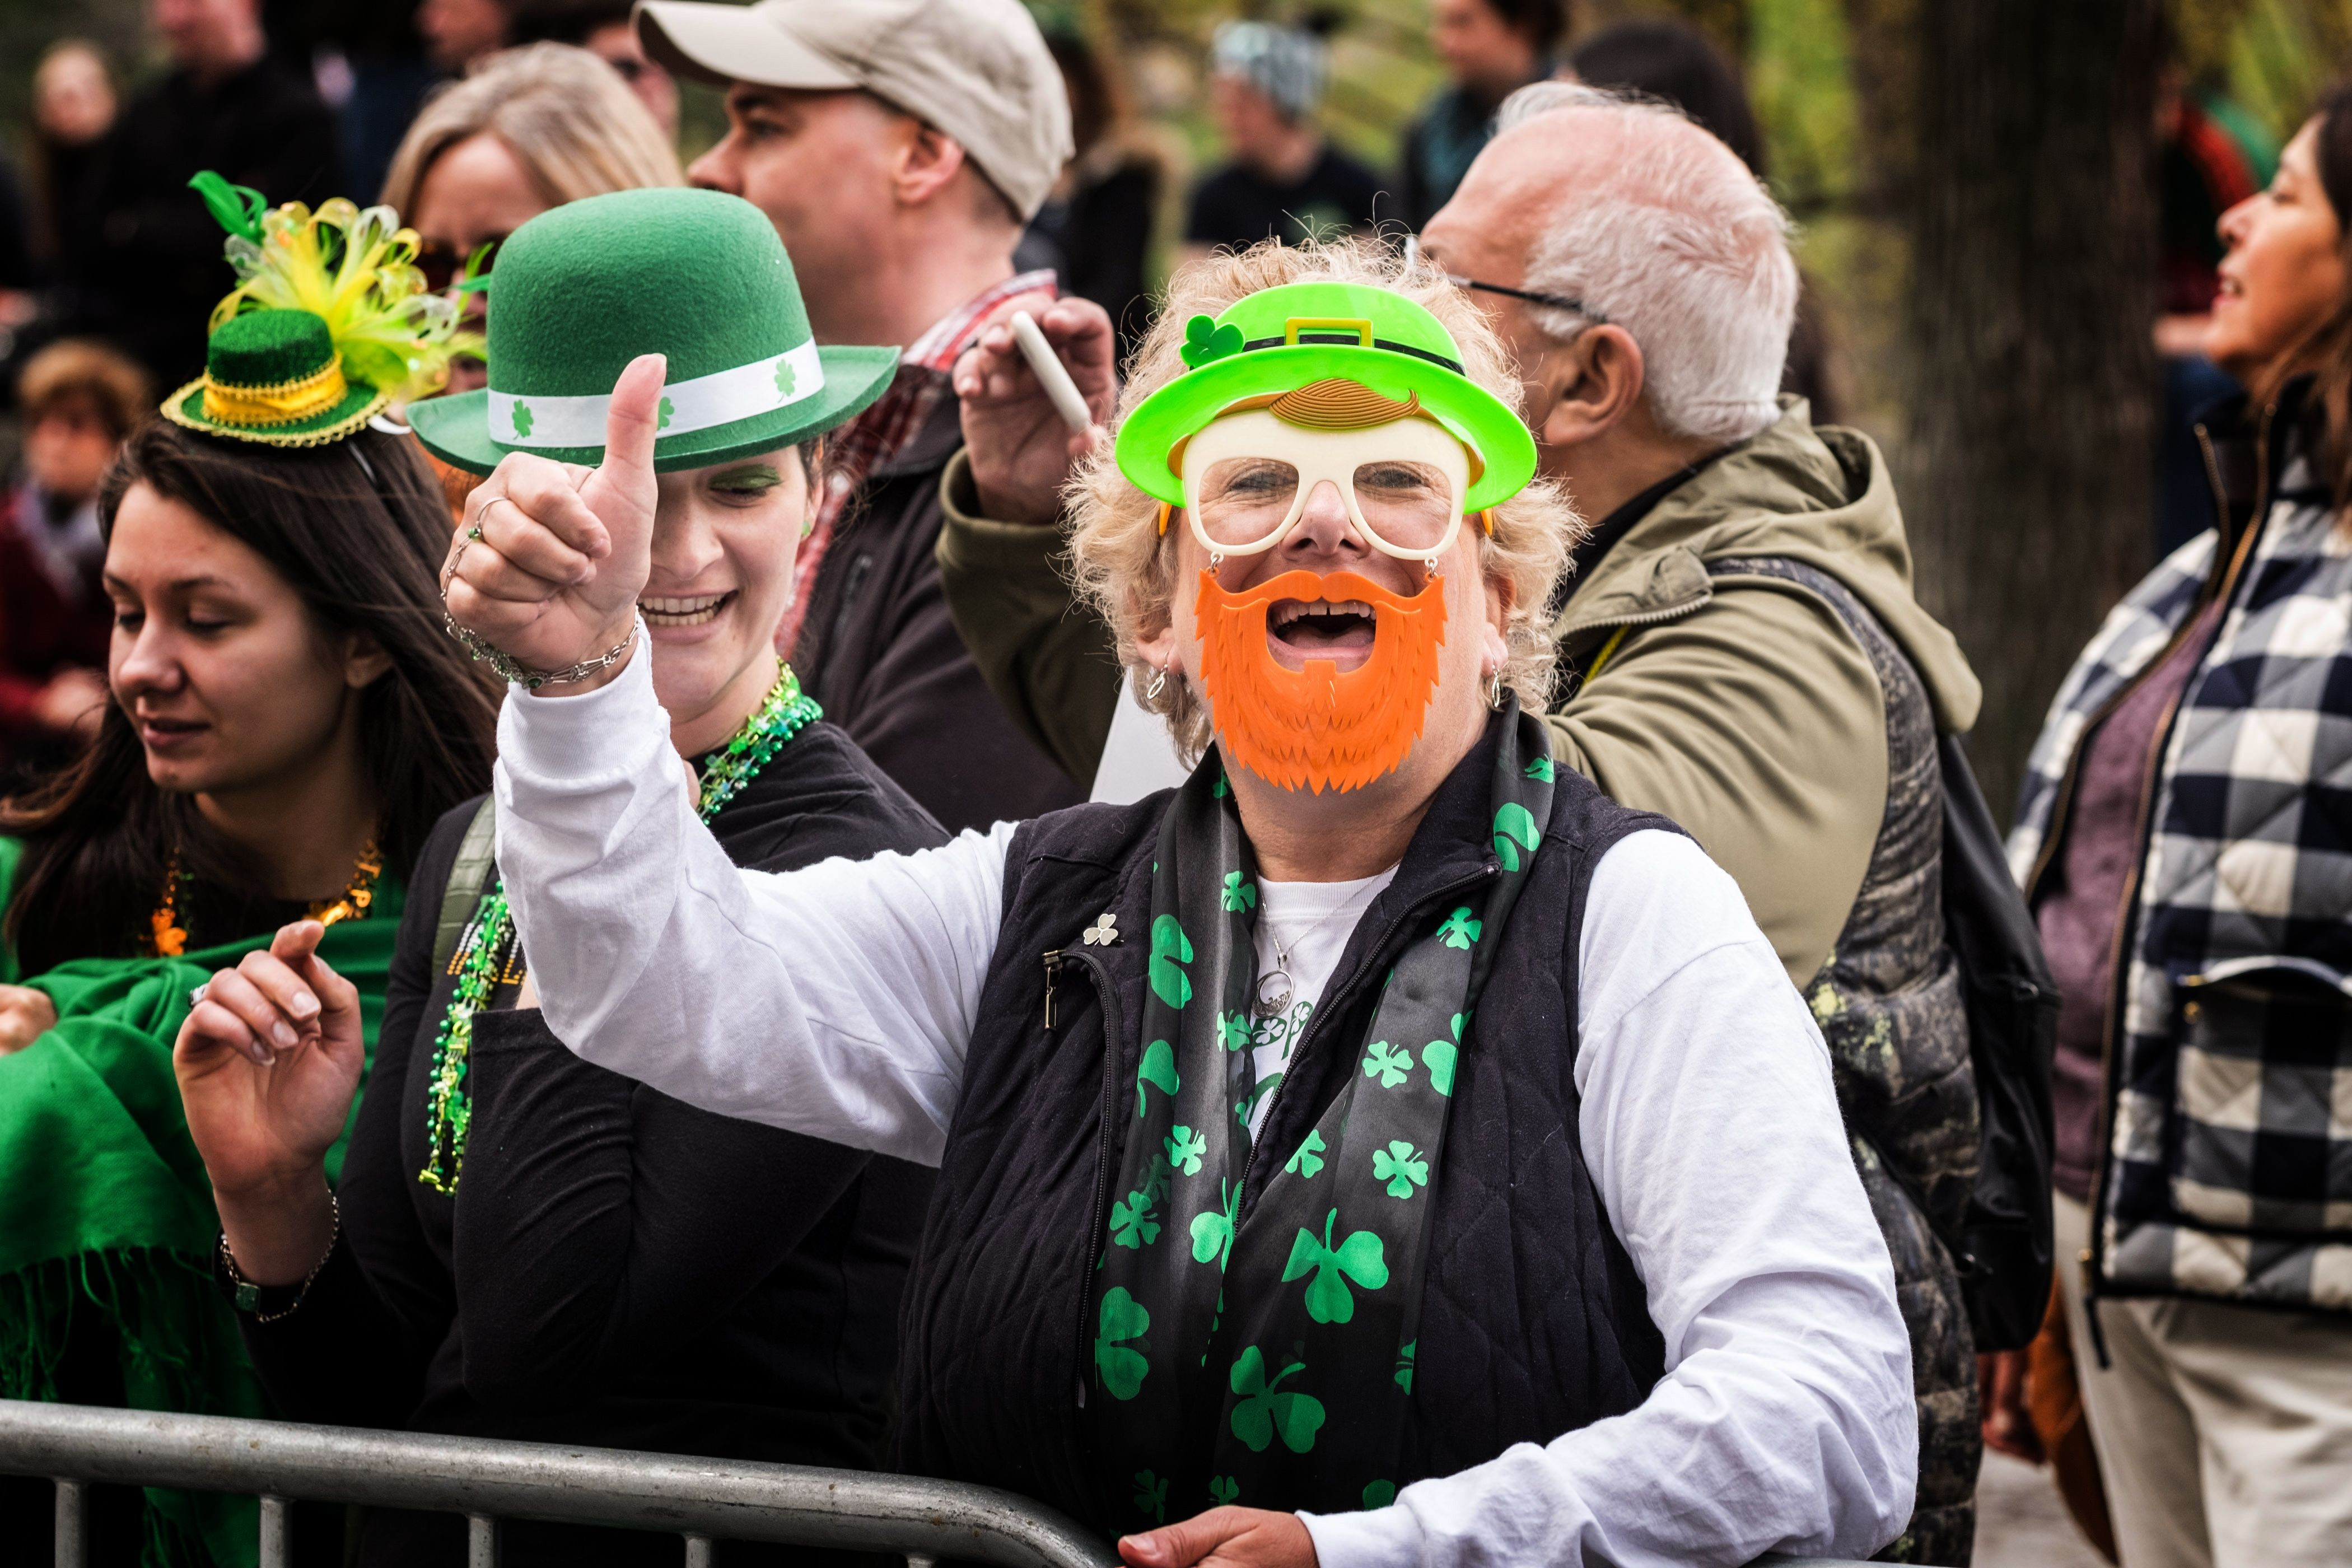 NEW YORK, NY - MARCH 17:  Attendees seen at the 255th annual St. Patrick's Day Parade along Fifth Avenue in New York City on March 17, 2016 in New York City.  (Photo by Larry Busacca/Getty Images) (Foto: Getty Images)